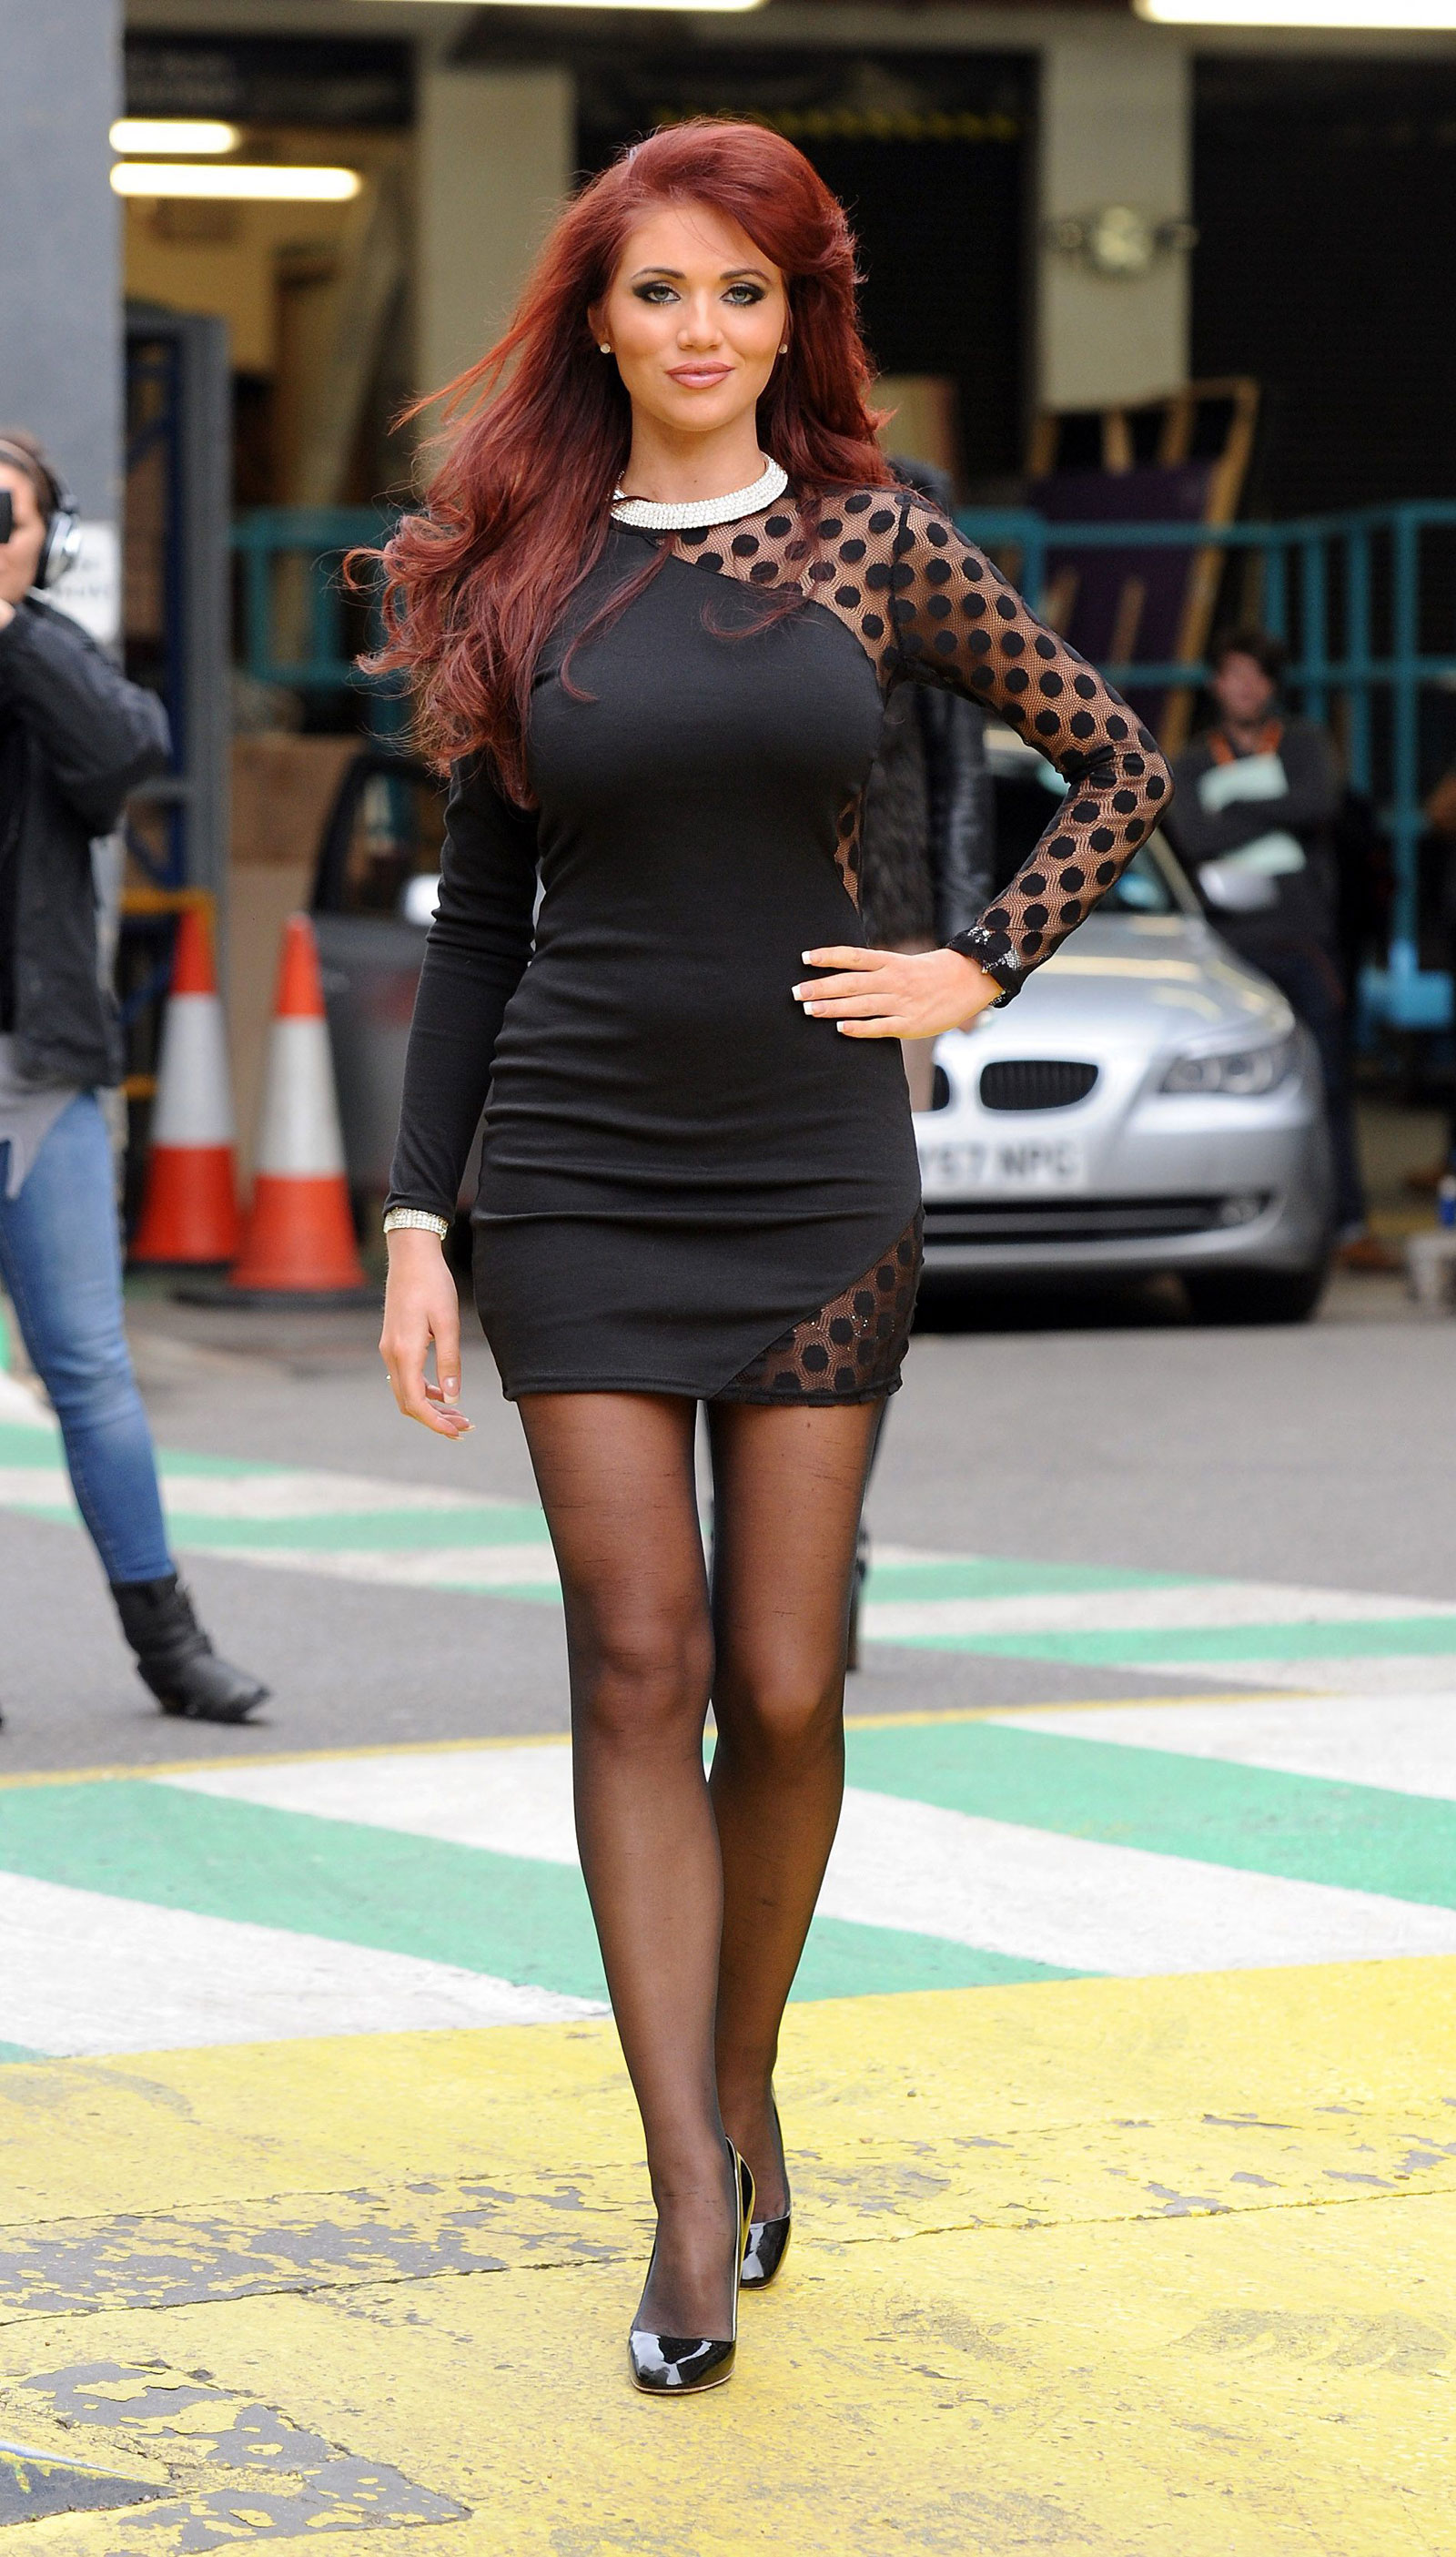 42 Photos Of Amy Childs Outside Itv Studios In London